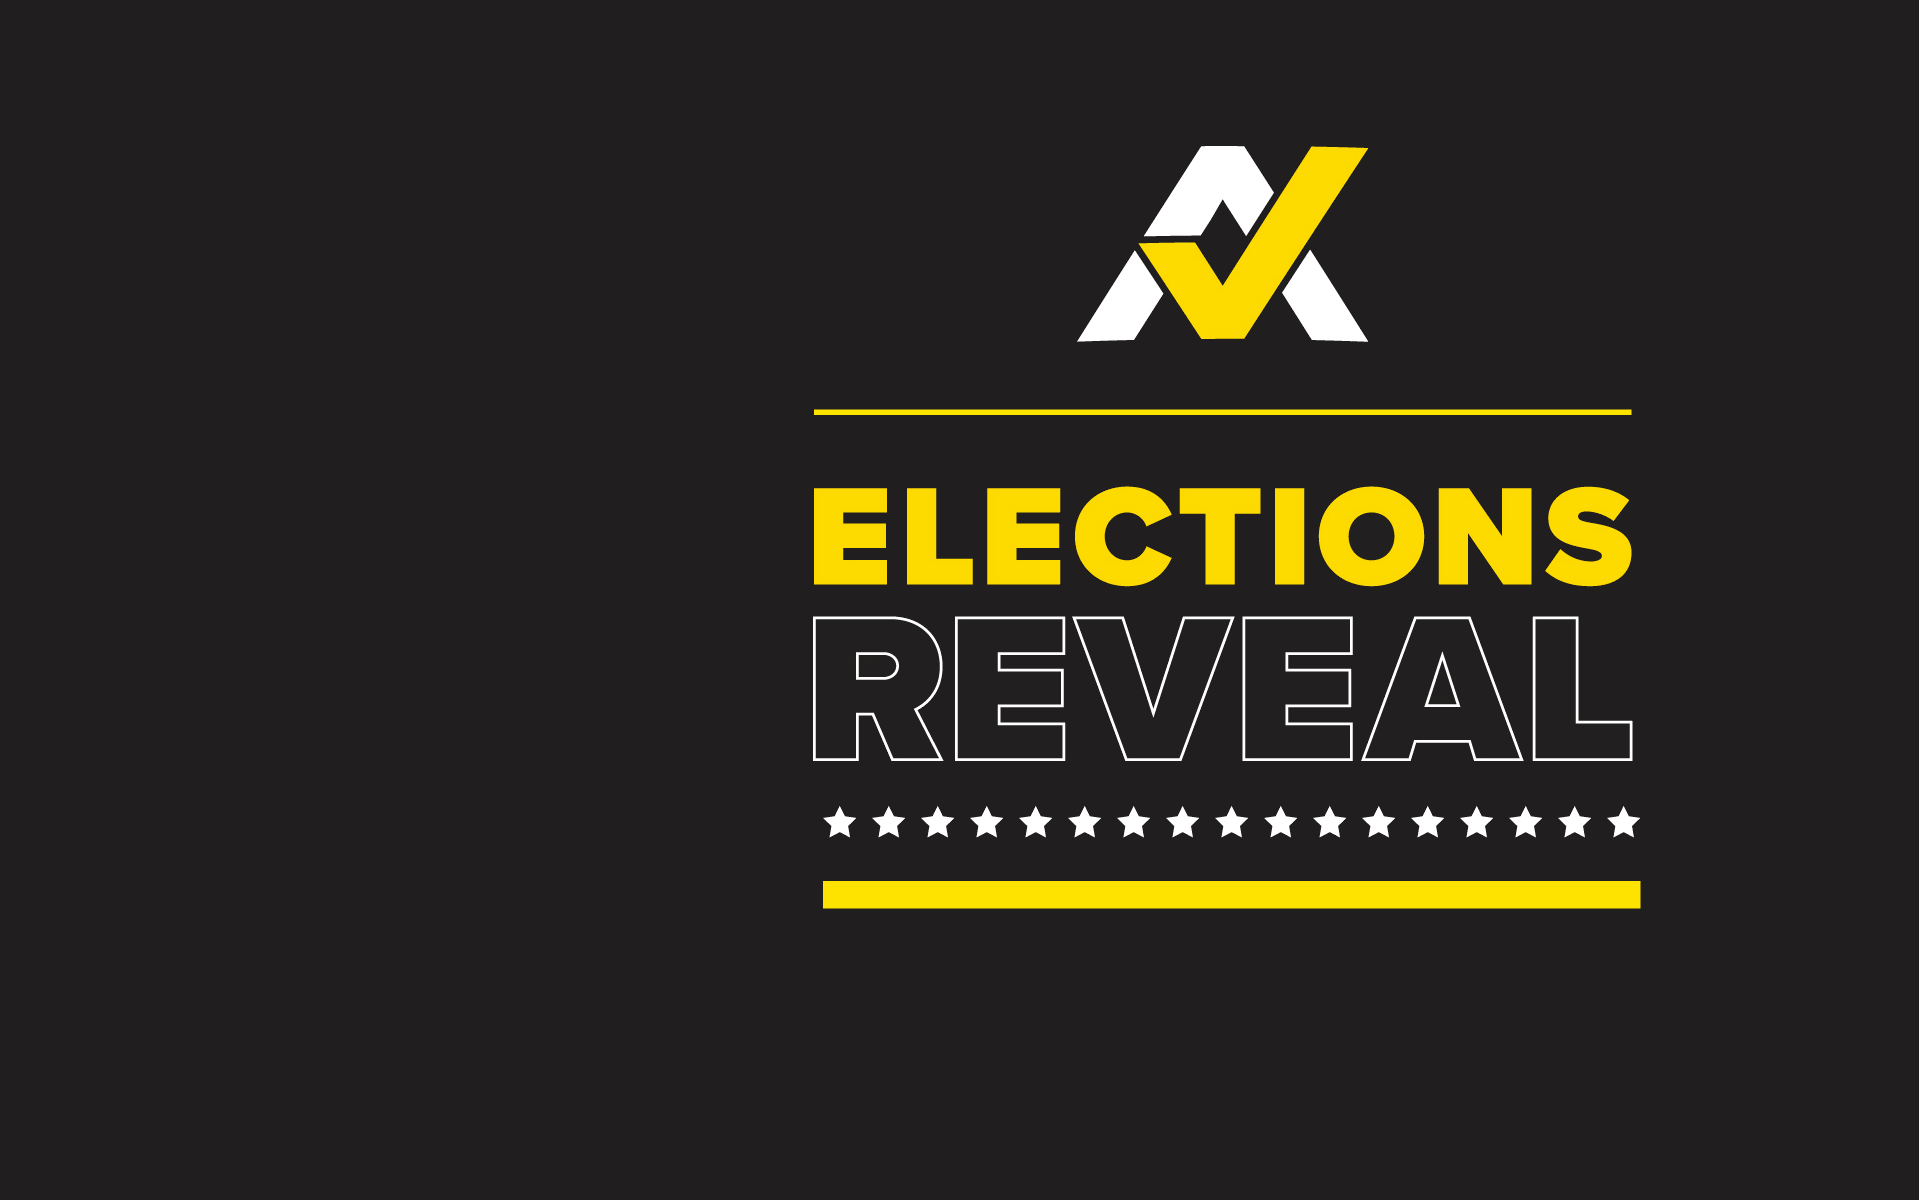 Elections Reveal